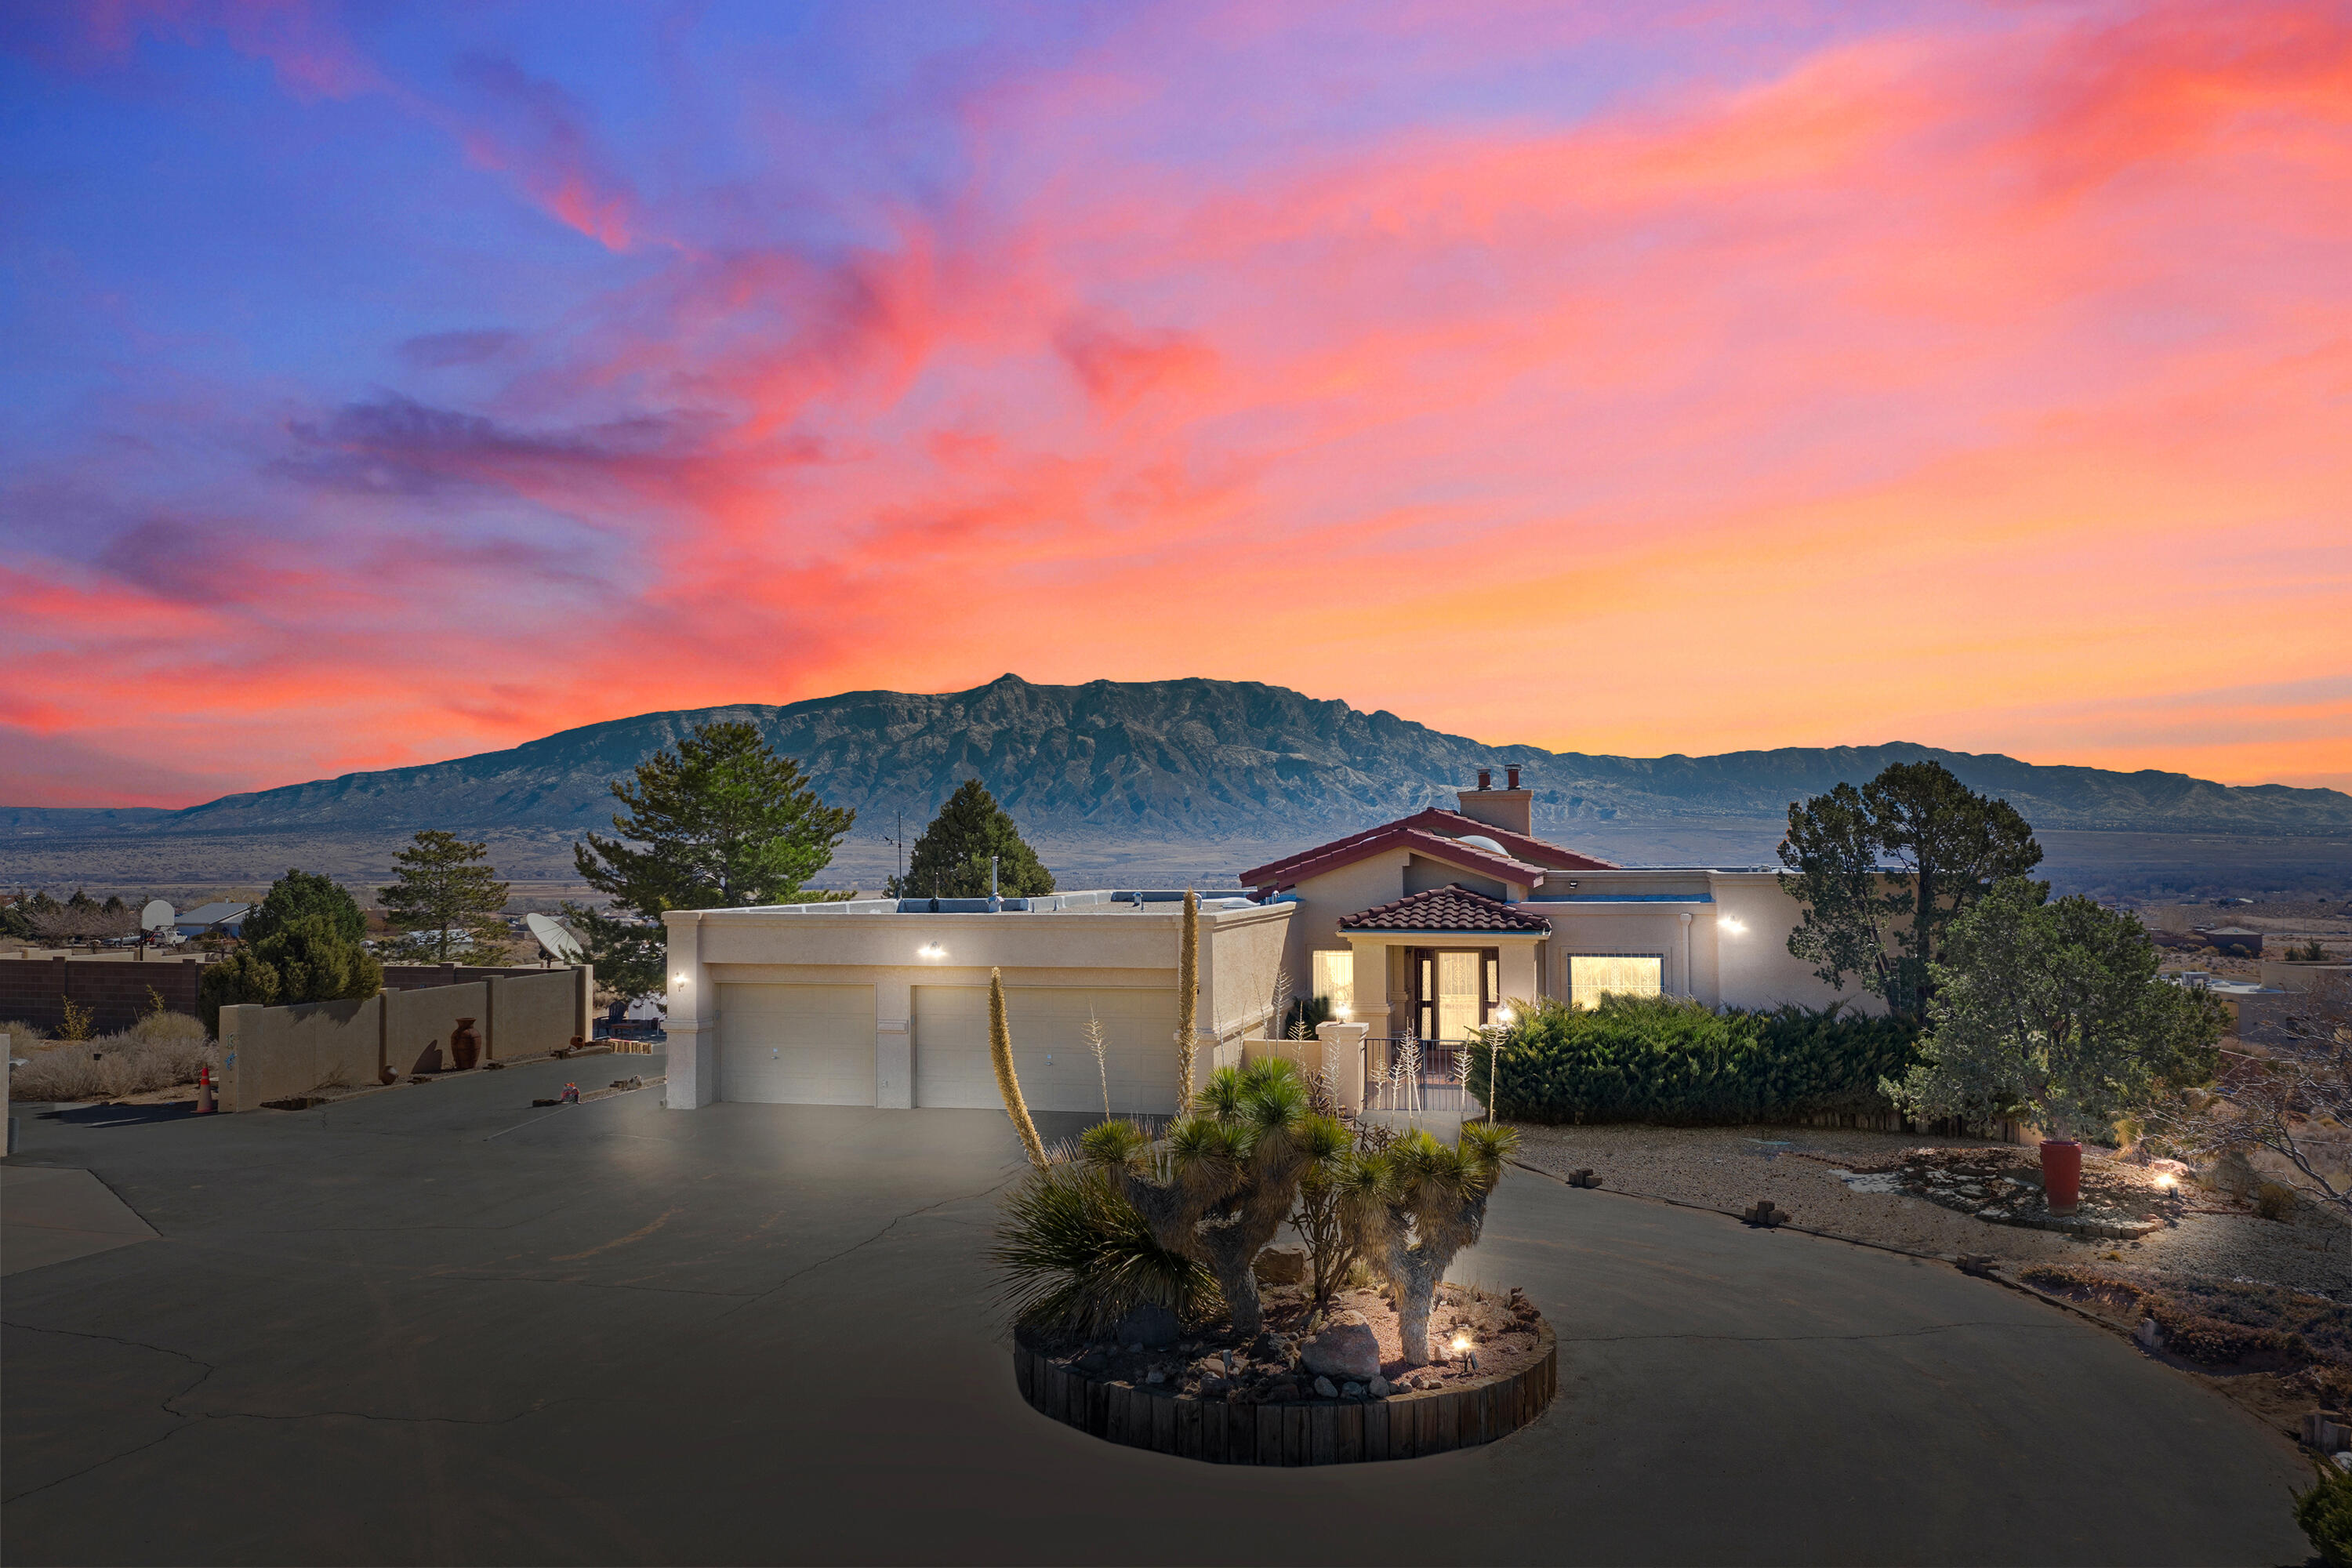 Looking for views? This custom home has unmatched views of the Sandia's, come see for yourself. The heated pool, plus in ground spa, outdoor kitchen and cozy fireplace provide a backyard oasis. Yard includes a basketball court!The house really features the spectacular views with all windows and walk outs facing East. Gorgeous updated details in the kitchen and baths. The downstairs has an additional 3 bedrooms, recroom, kitchen, living room, and dining room! The 40'x75' shop is covered indoor parking for your RV, Loft for storage, plus bathroom! RV hook up and dump. Sale includes an additional 1 acre home site.